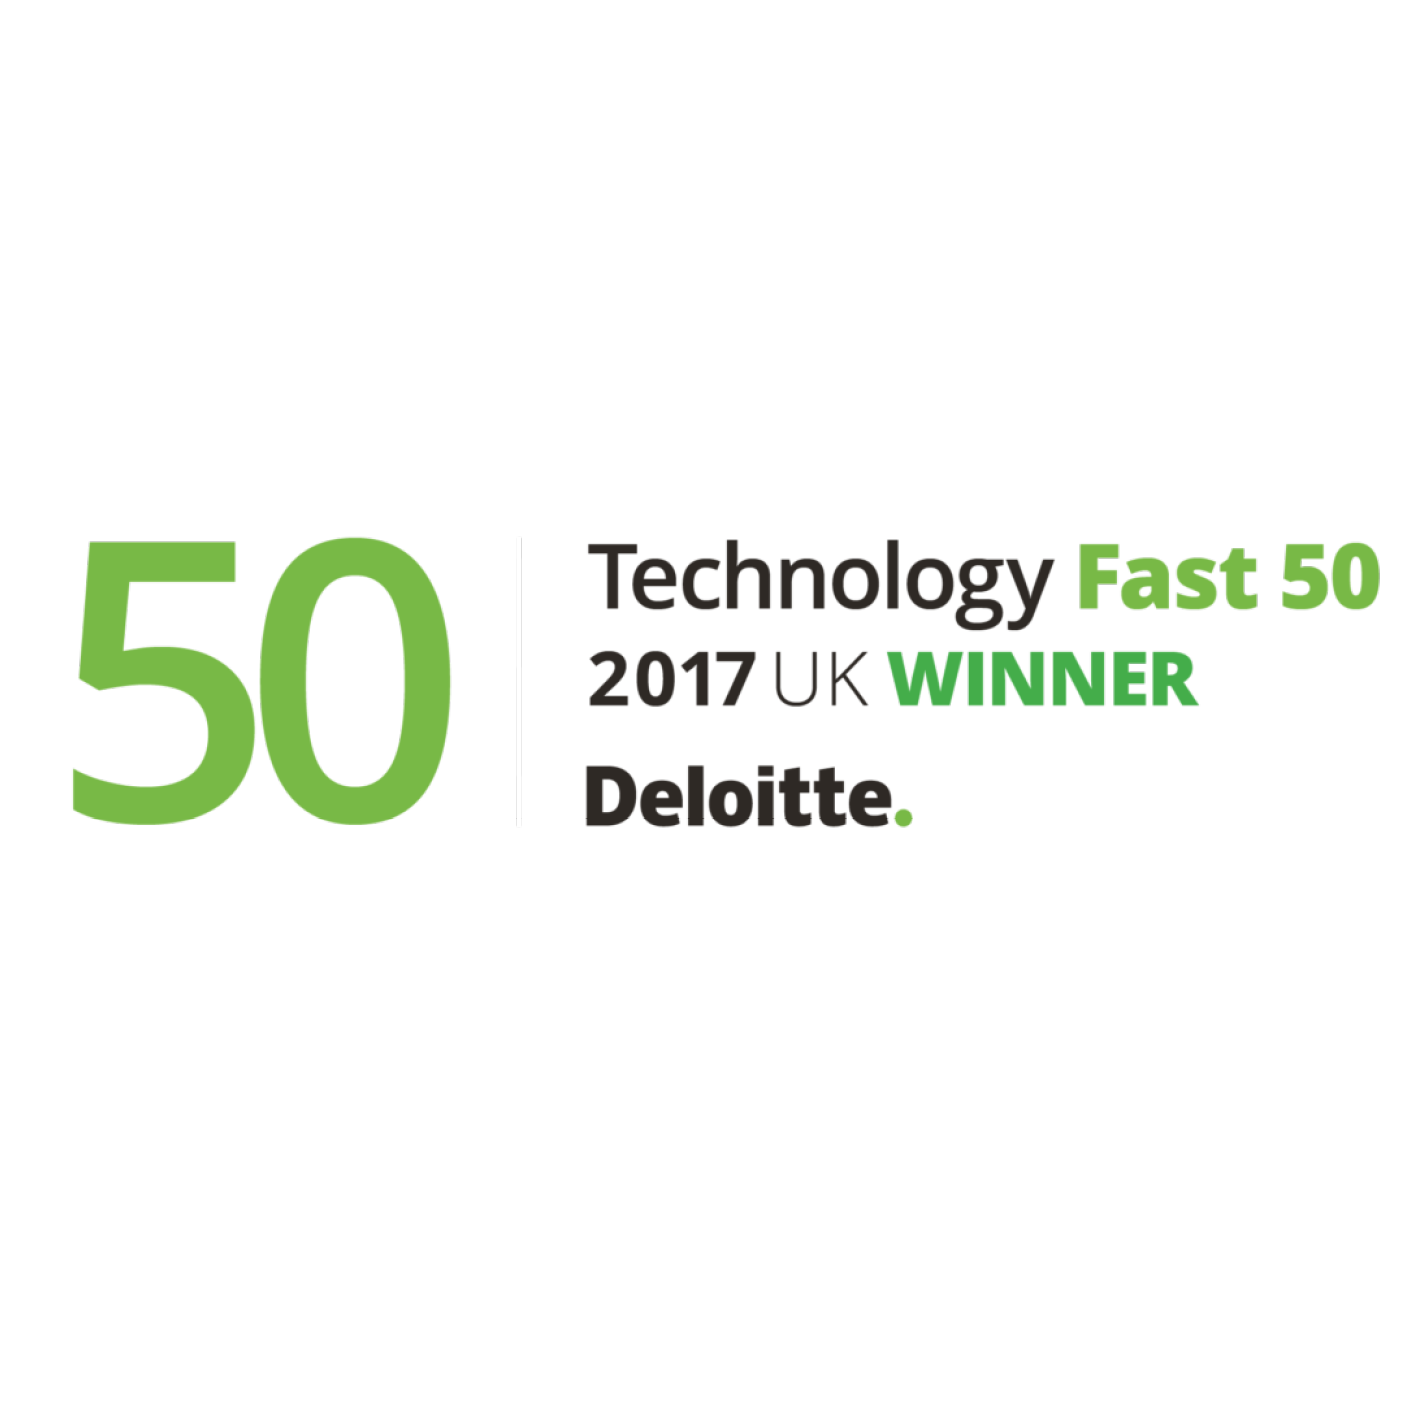 Awards - Technology Fast 50